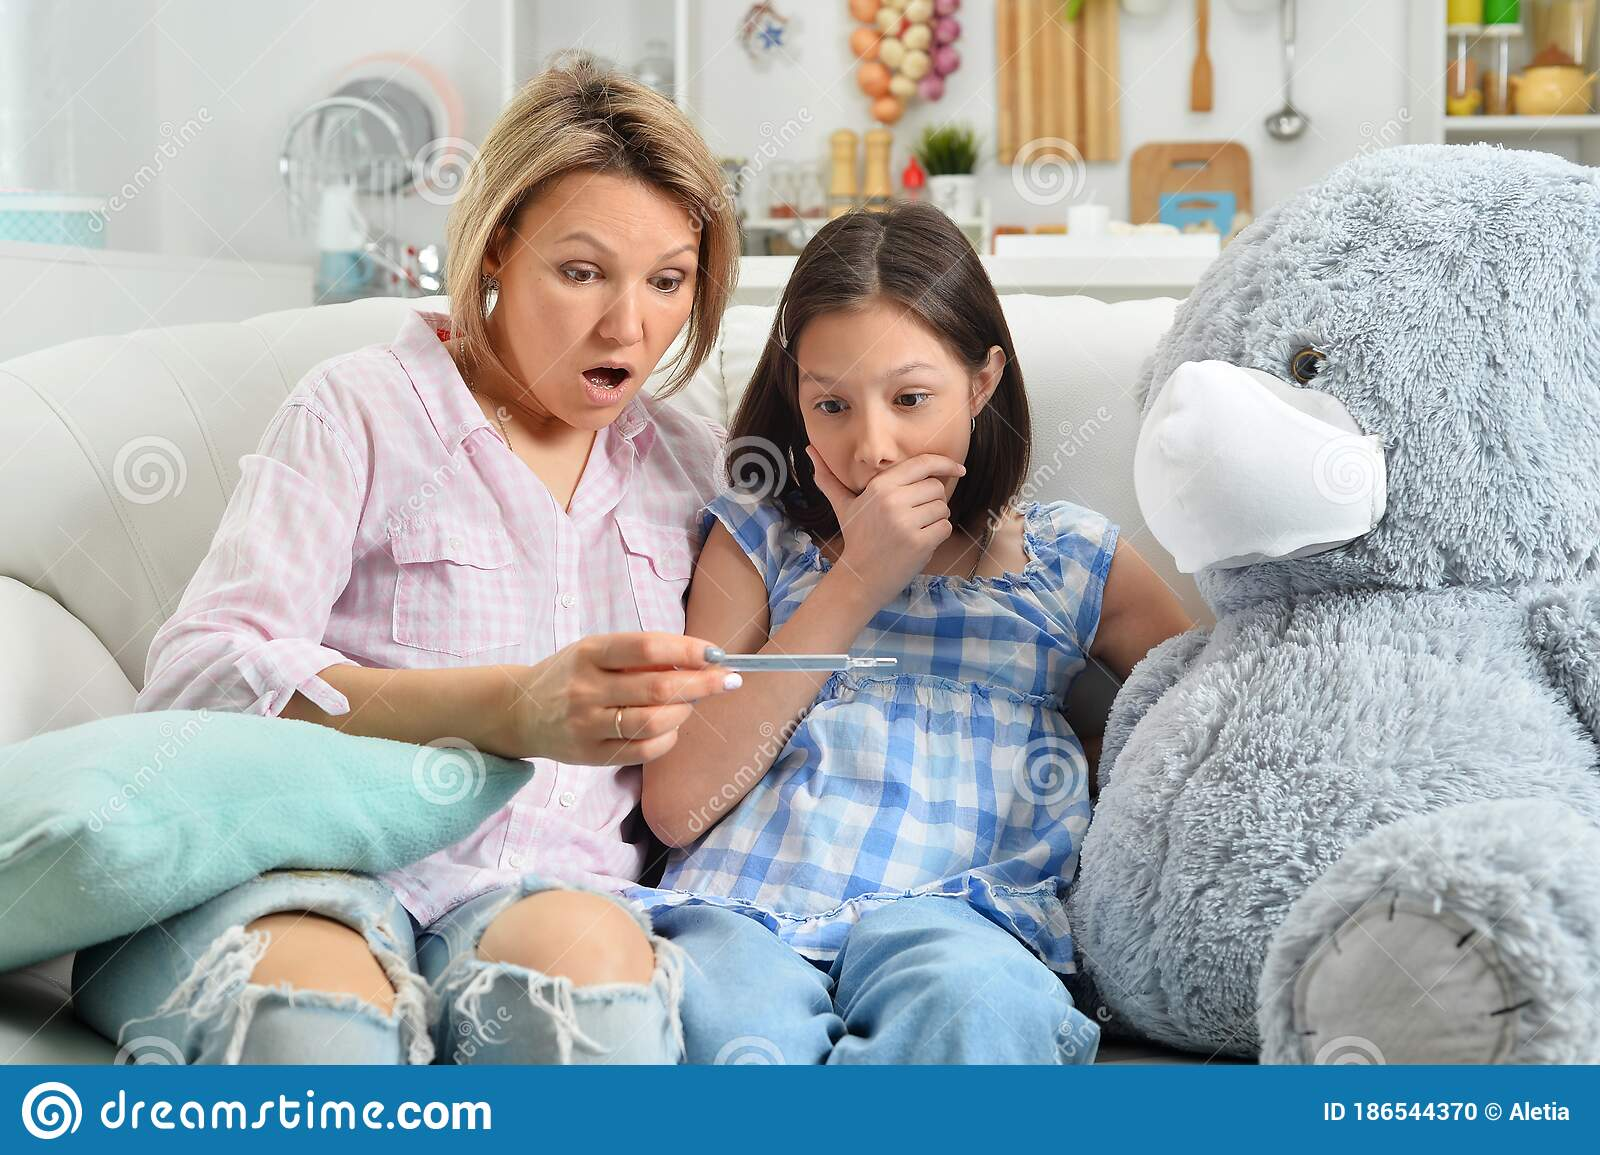 Girl And Mother Playing With Toy Teddy Bear In Facial Mask